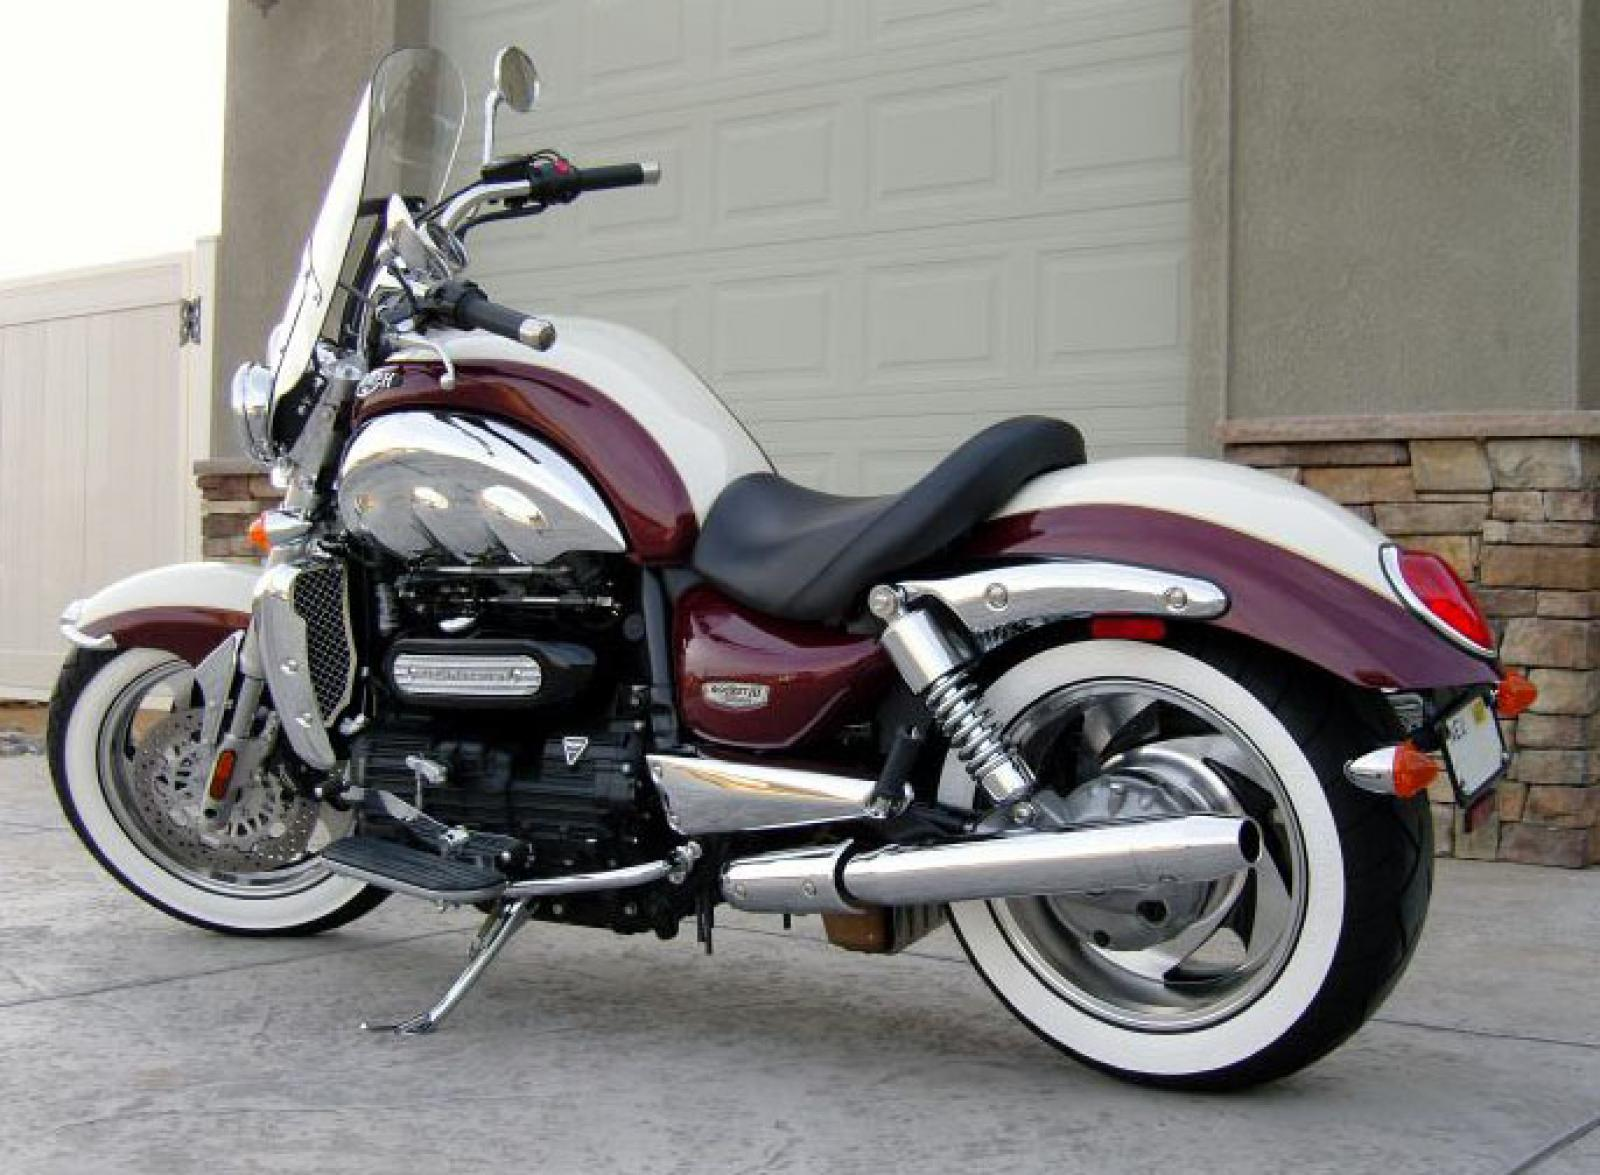 2008 triumph rocket iii classic moto zombdrive com. Black Bedroom Furniture Sets. Home Design Ideas